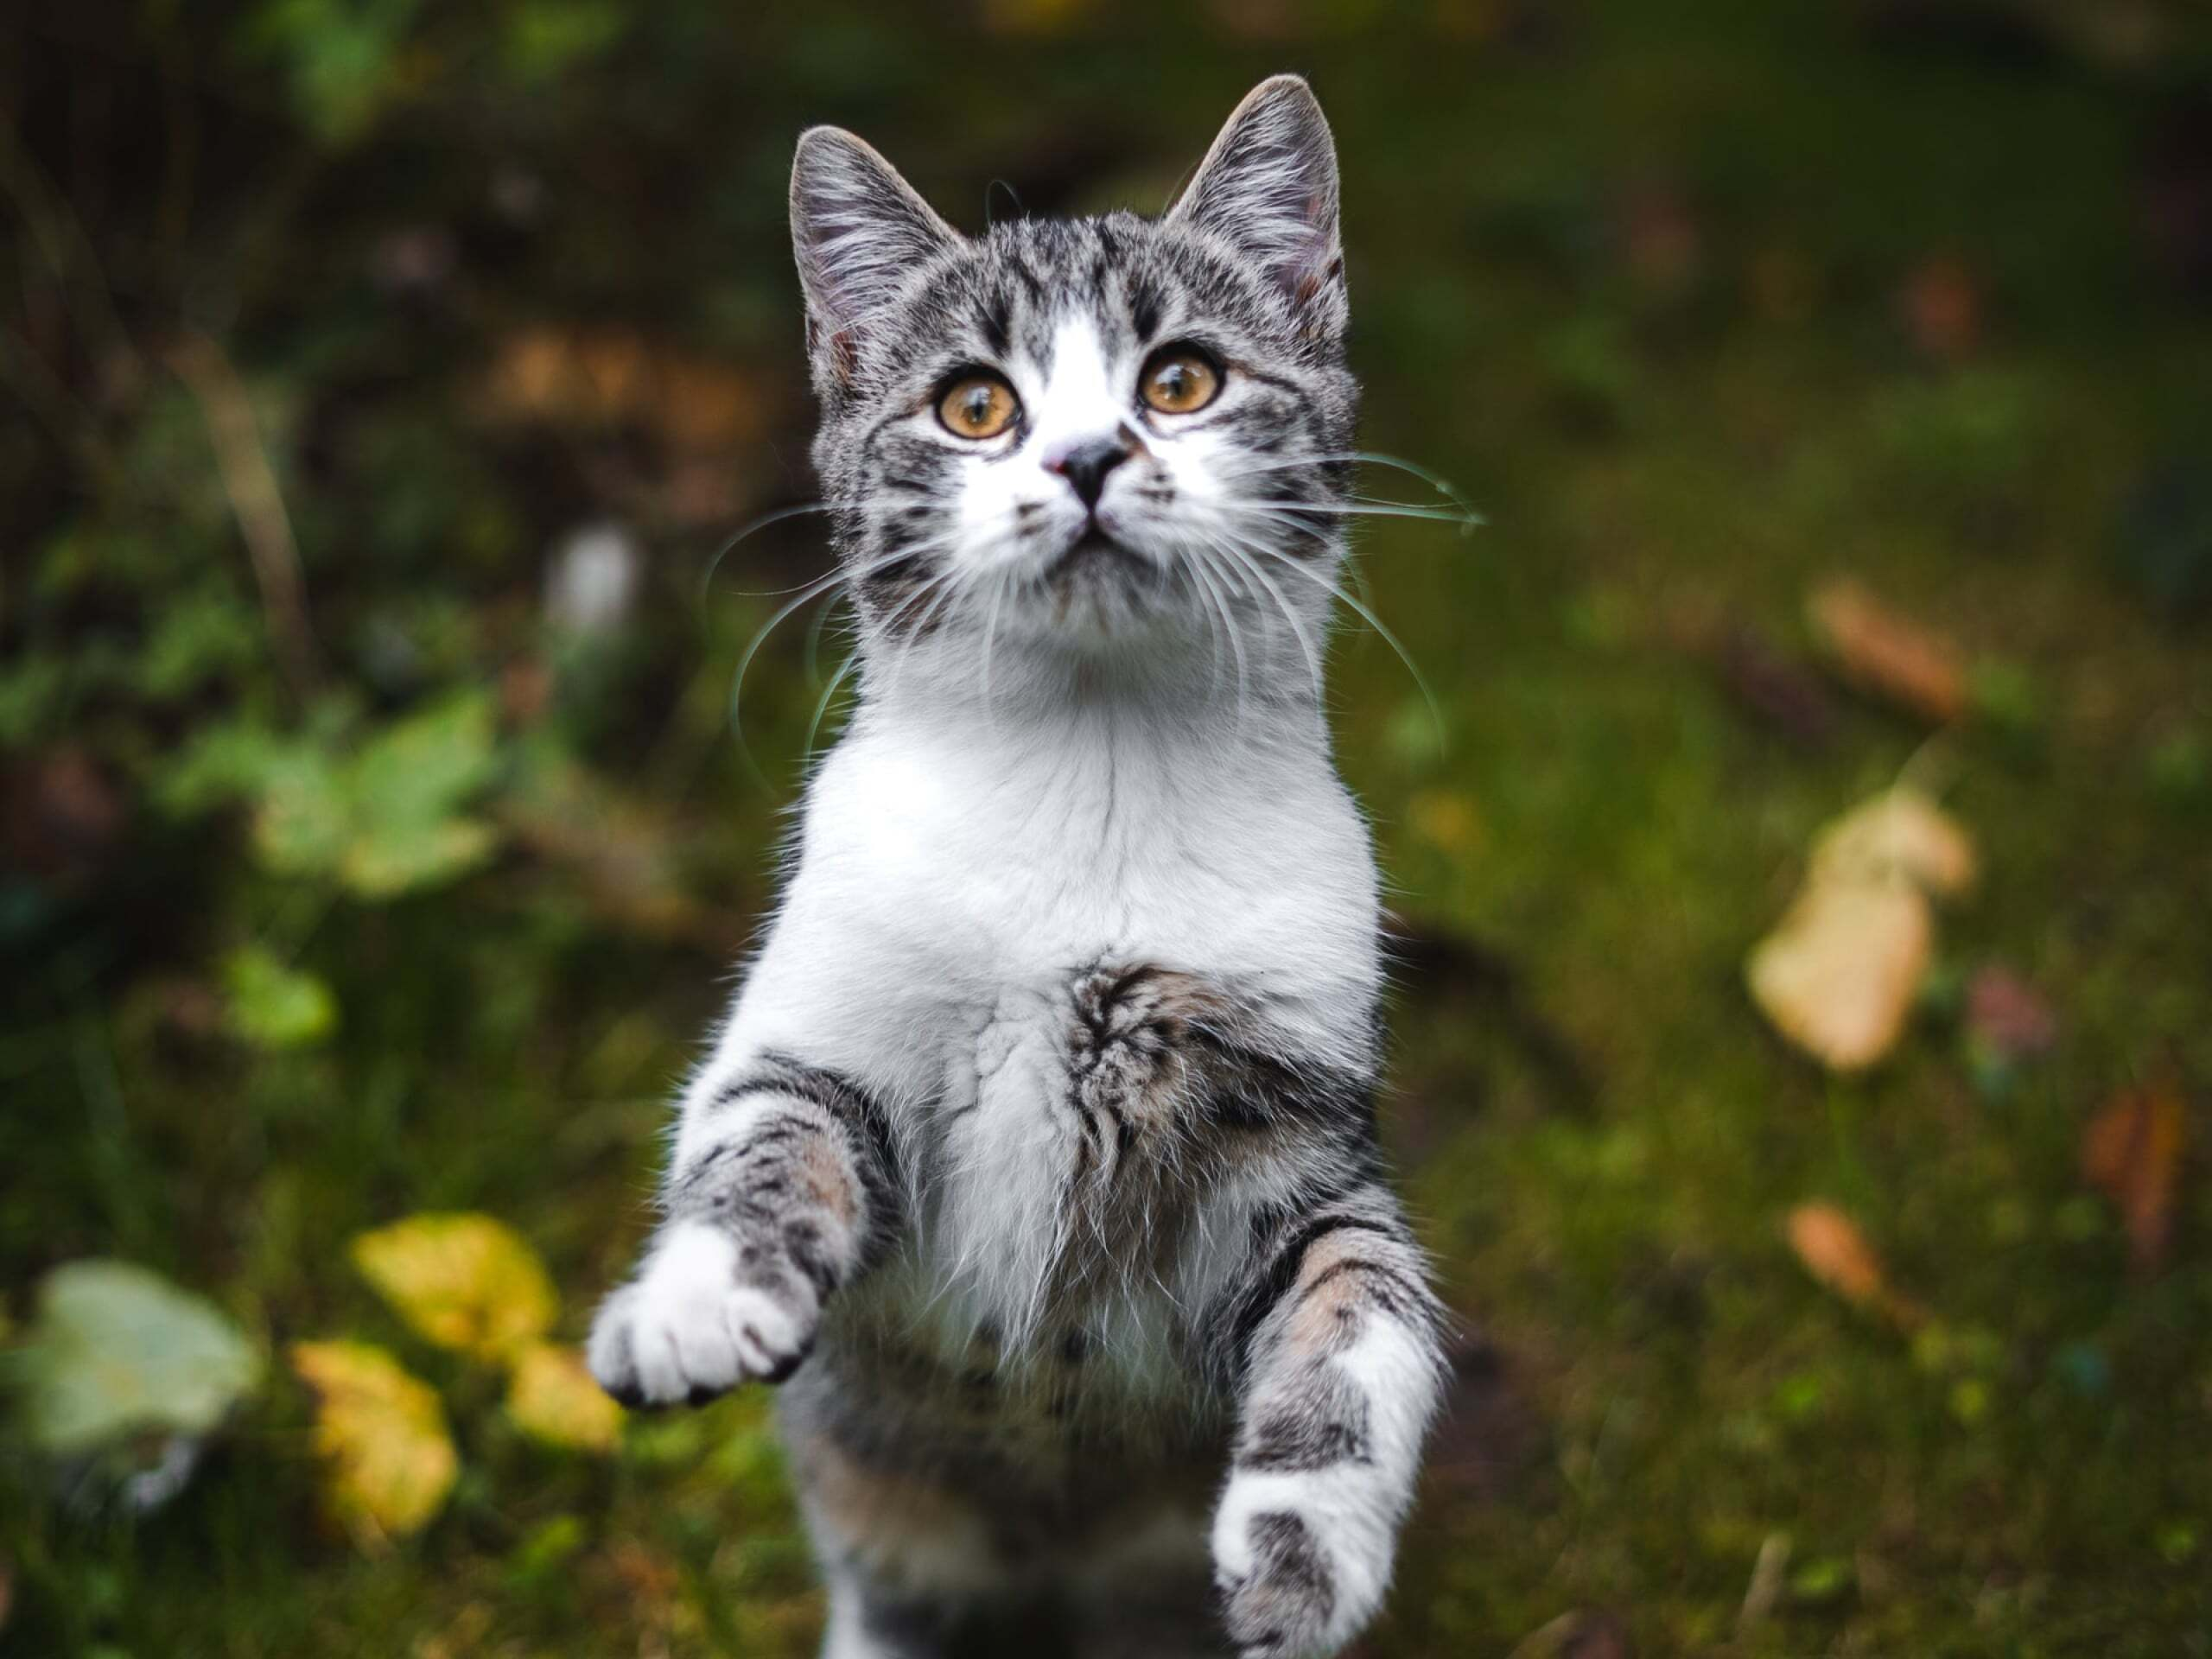 Grey and white cat standing in a grassy field about to swat the camera.